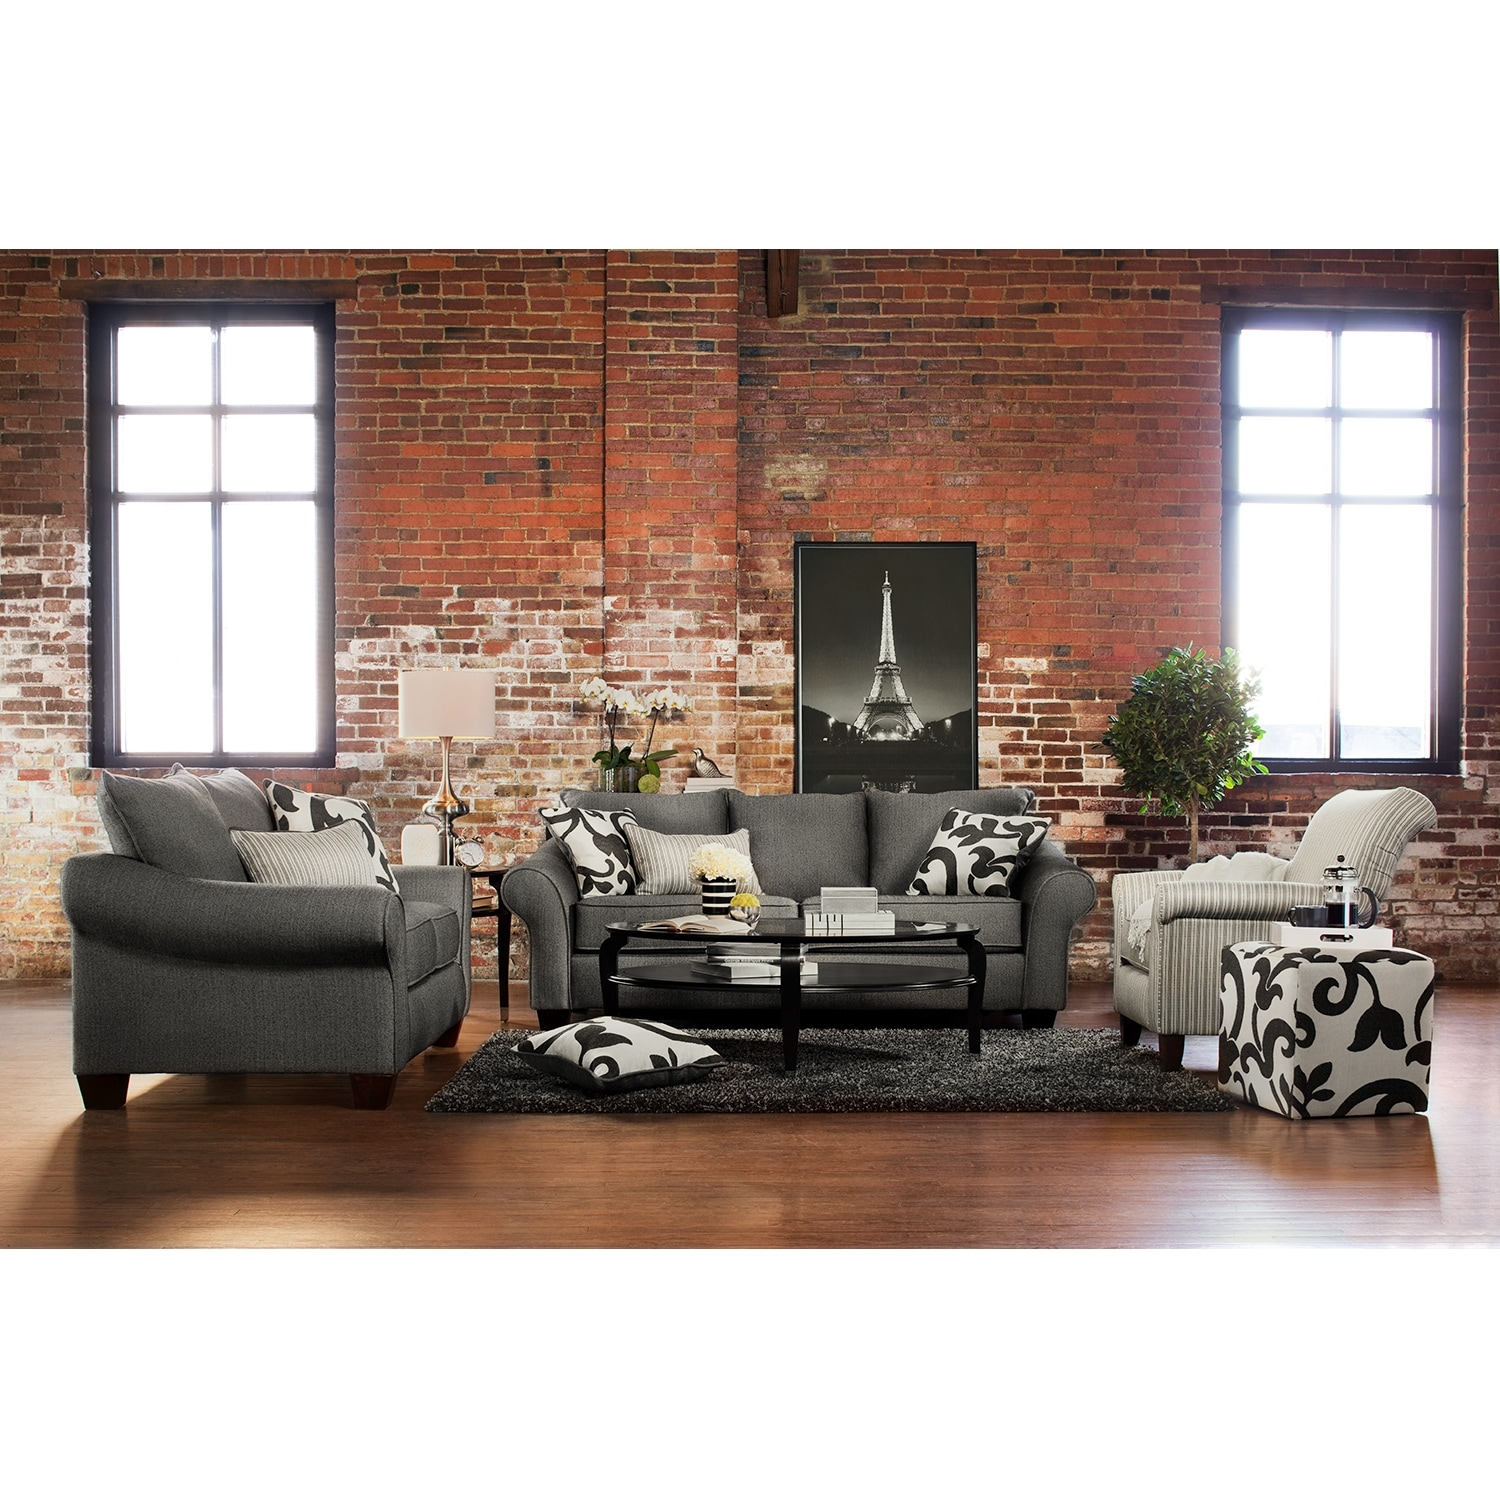 colette sofa - gray | value city furniture